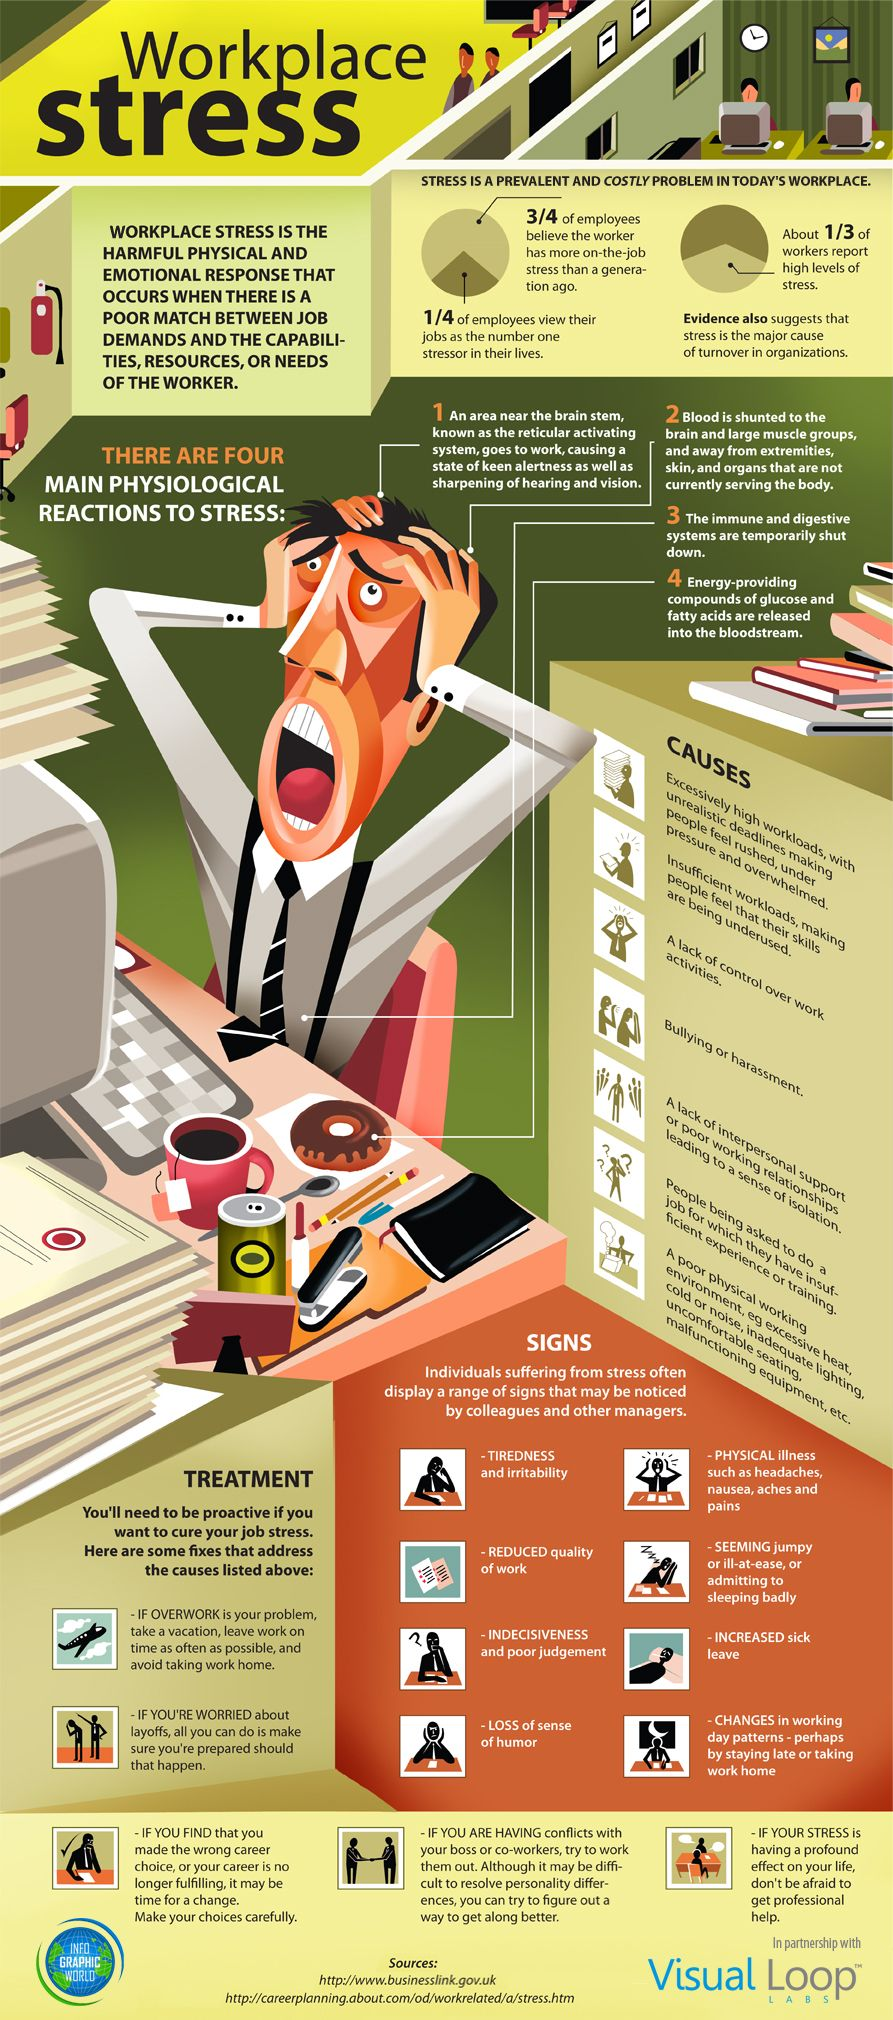 Reduction at work - how to avoid